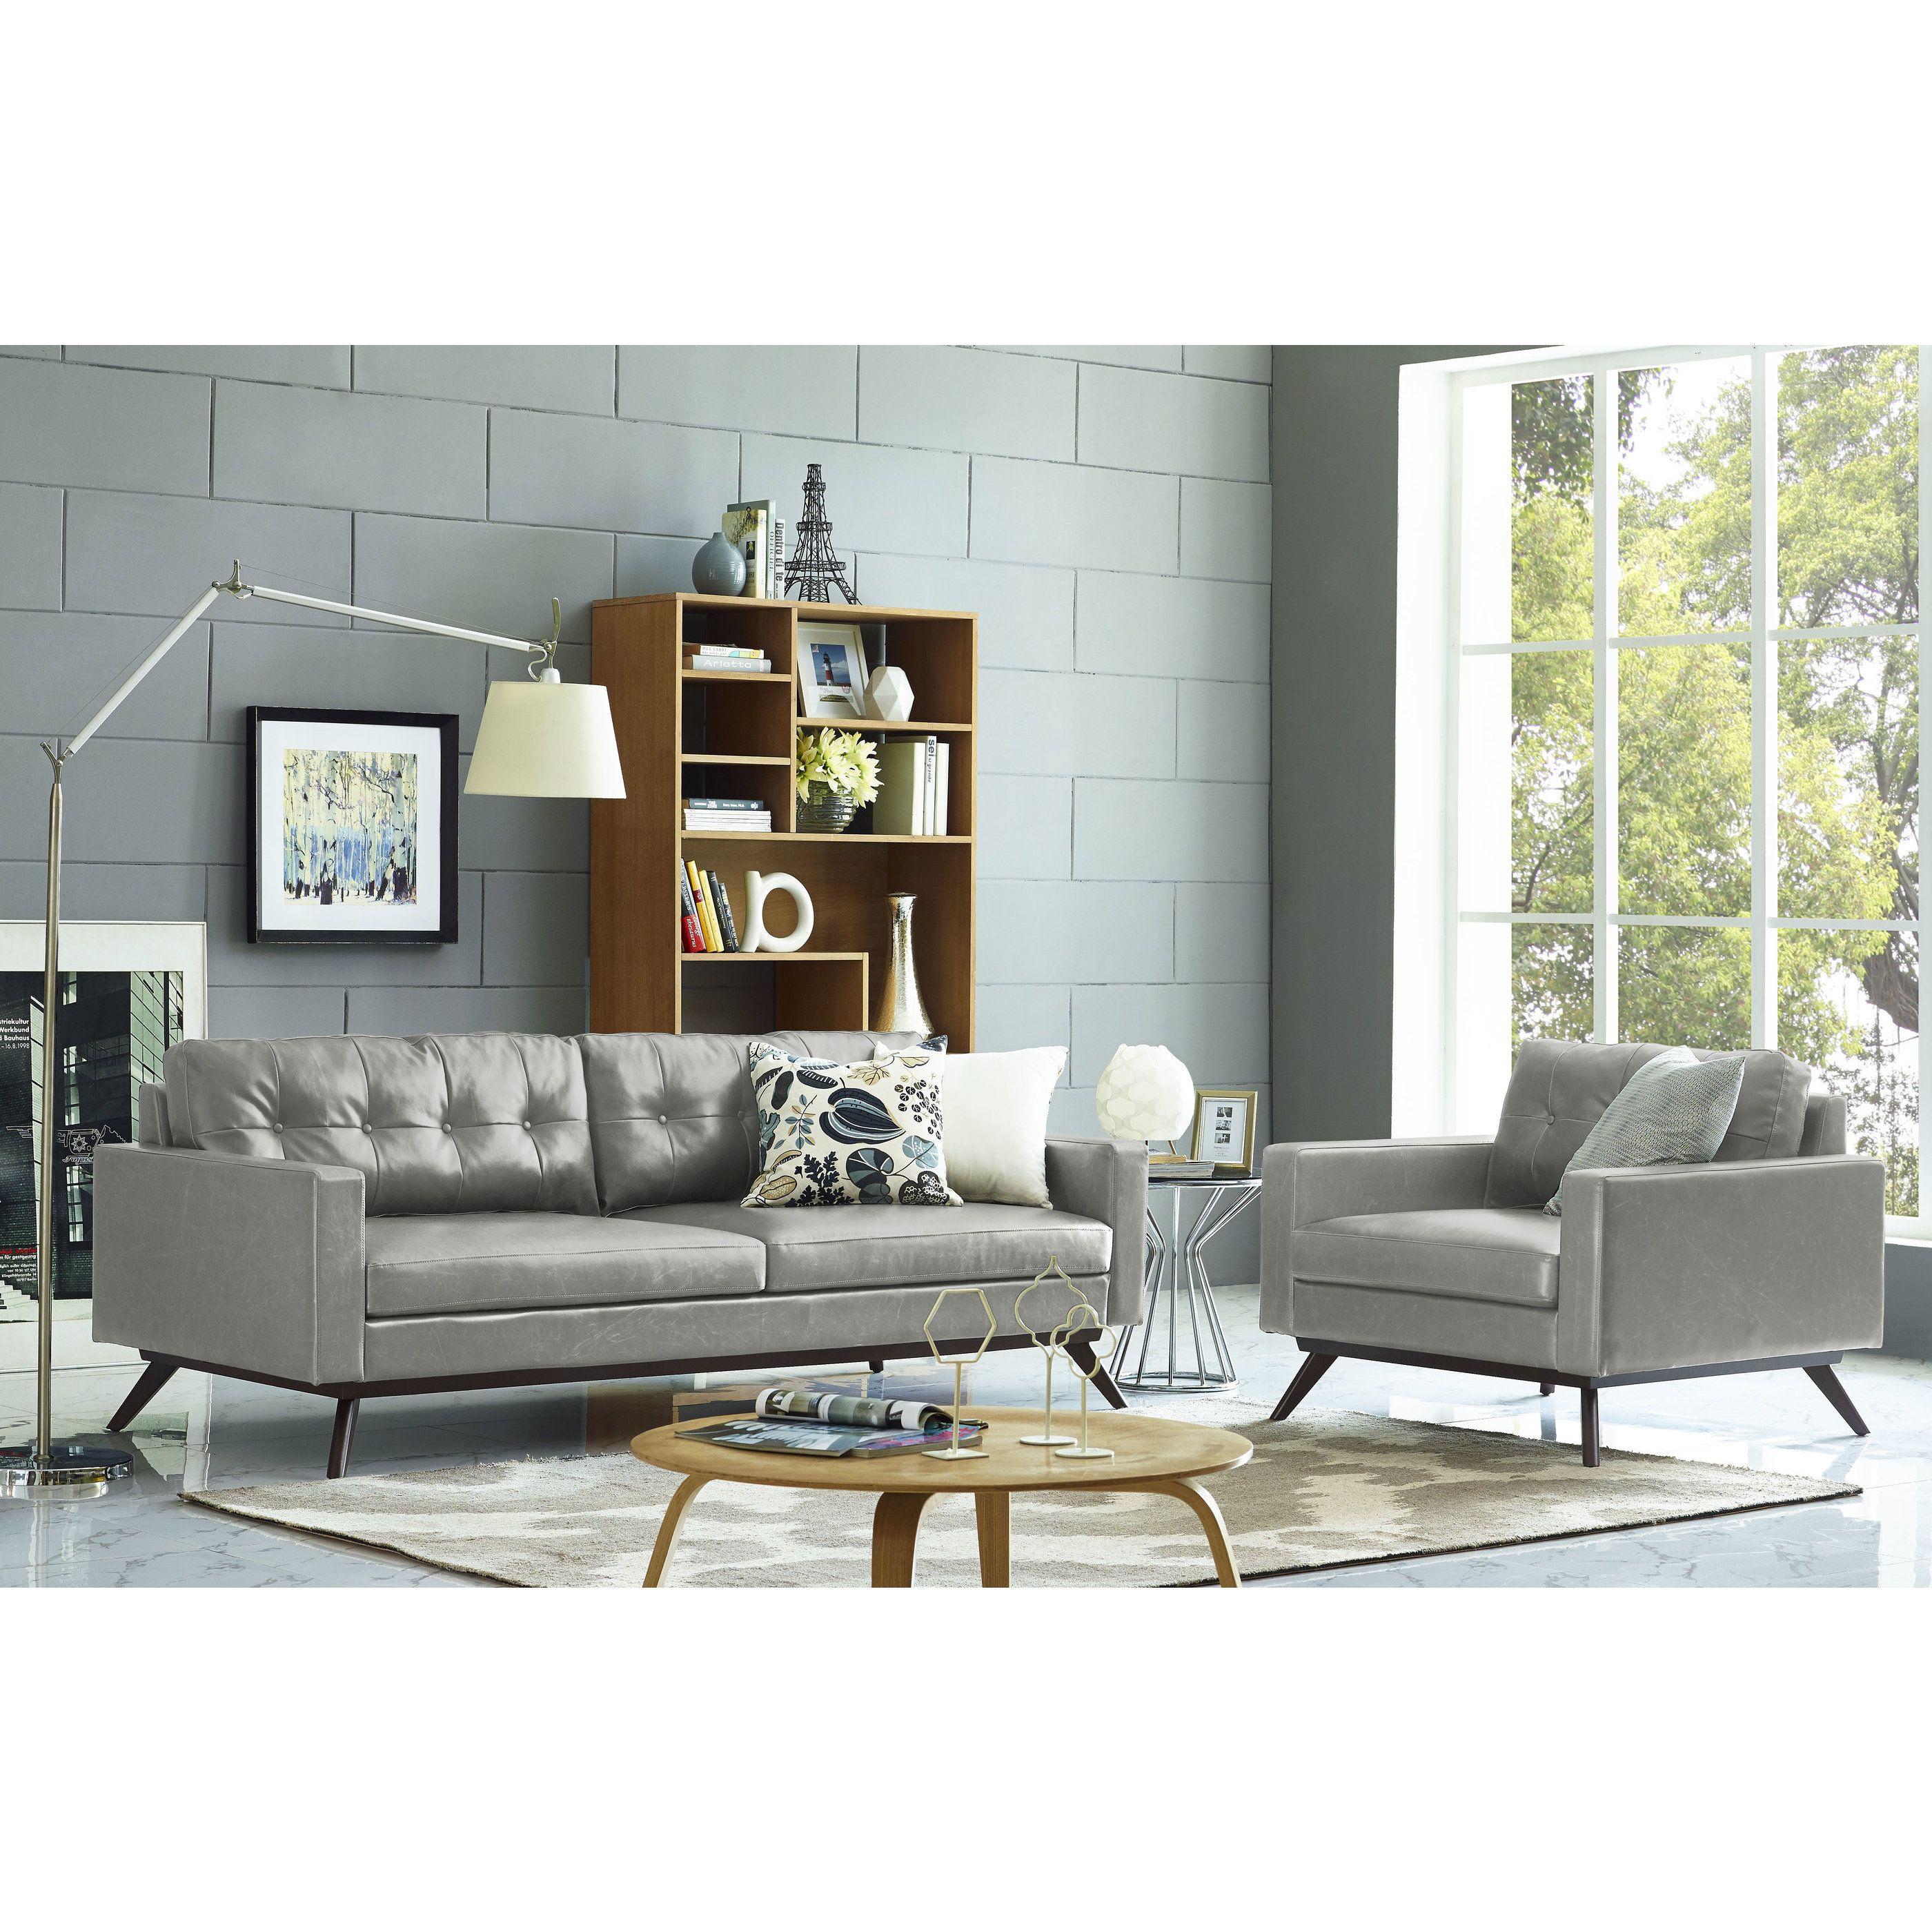 stores ideas of goods size full tx home in lovely mattress store sectional furniture at midland sofa carters midlandniture loveseat marvelous